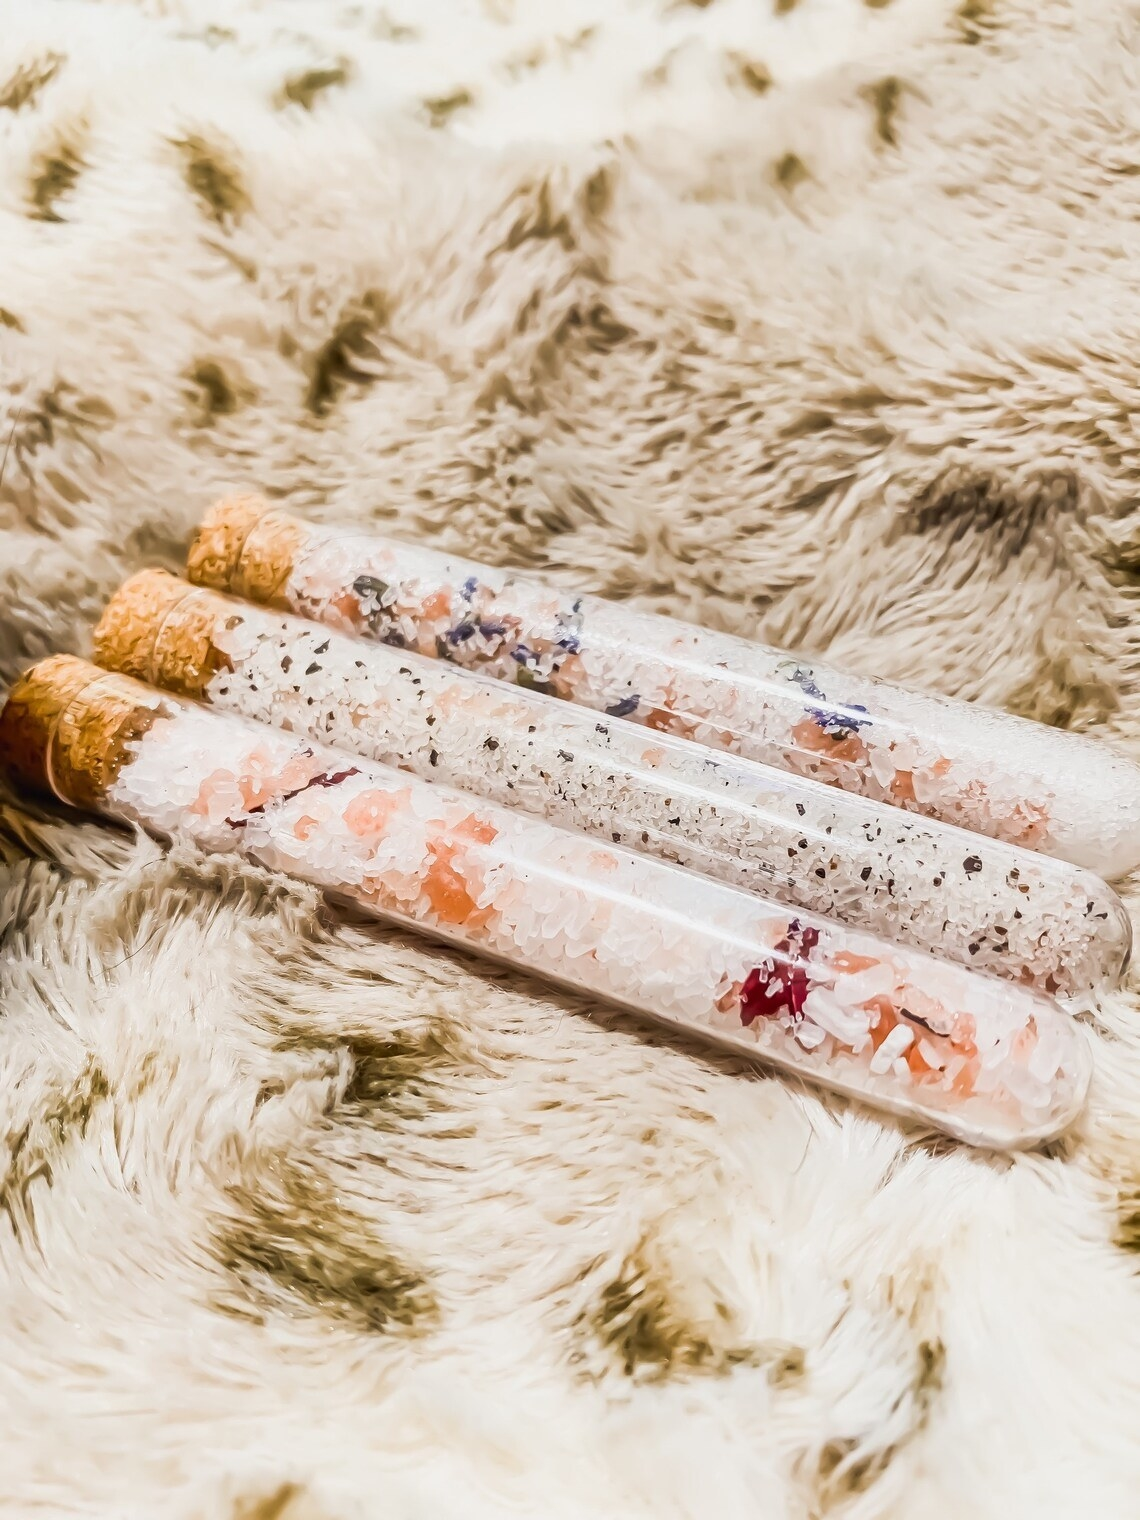 Three tubes of the bath salts laid out